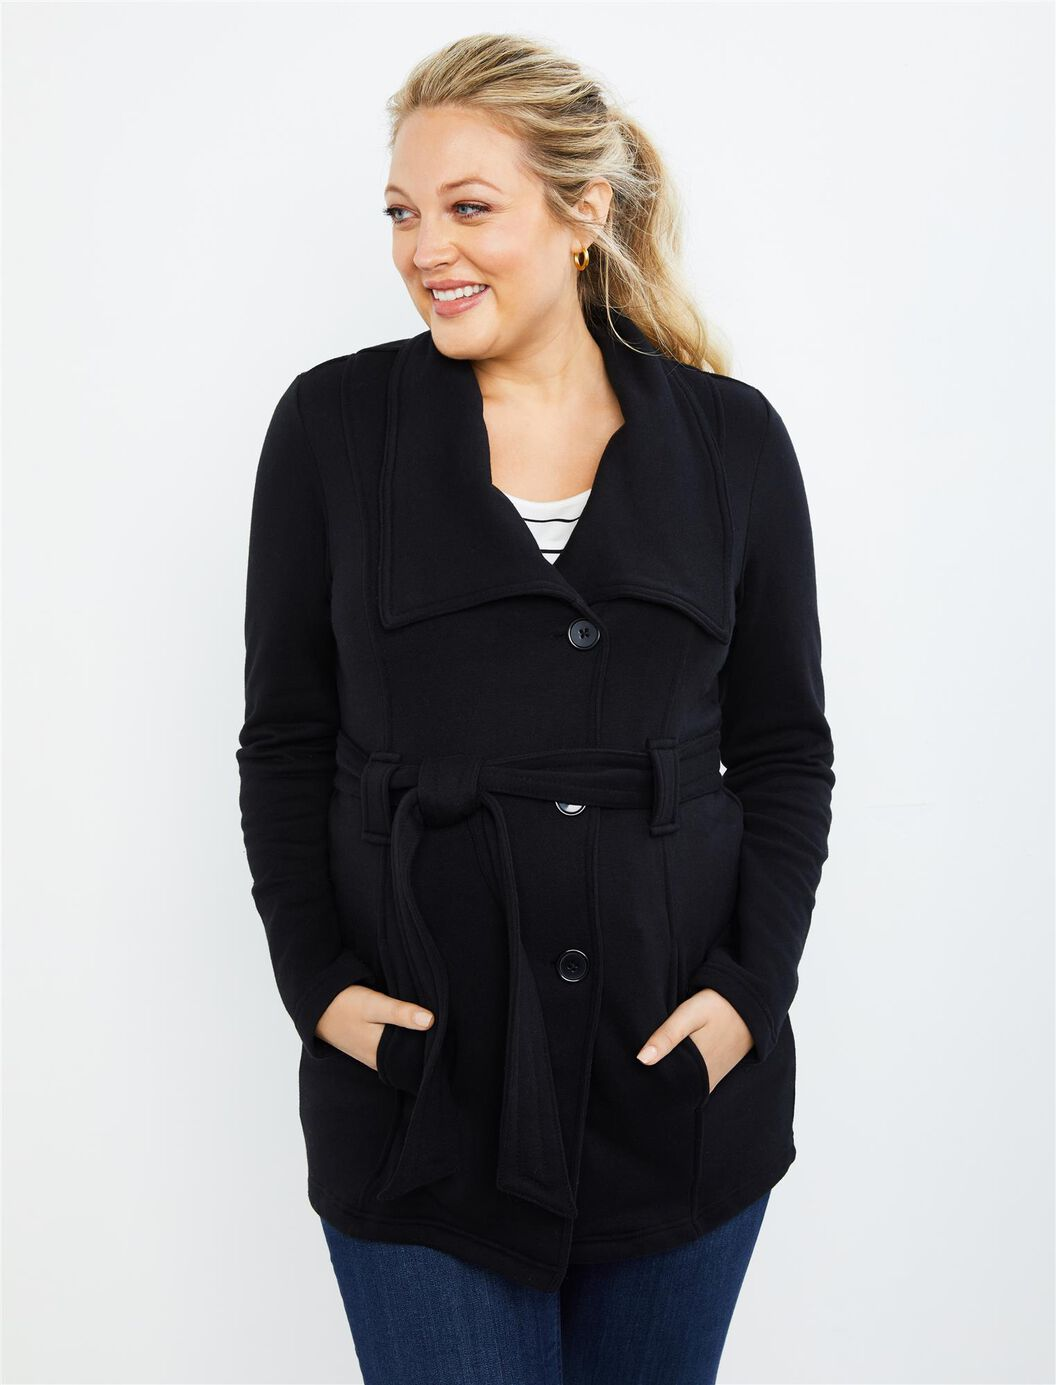 Removable Waist Tie French Terry Maternity Jacket at Motherhood Maternity in Victor, NY | Tuggl